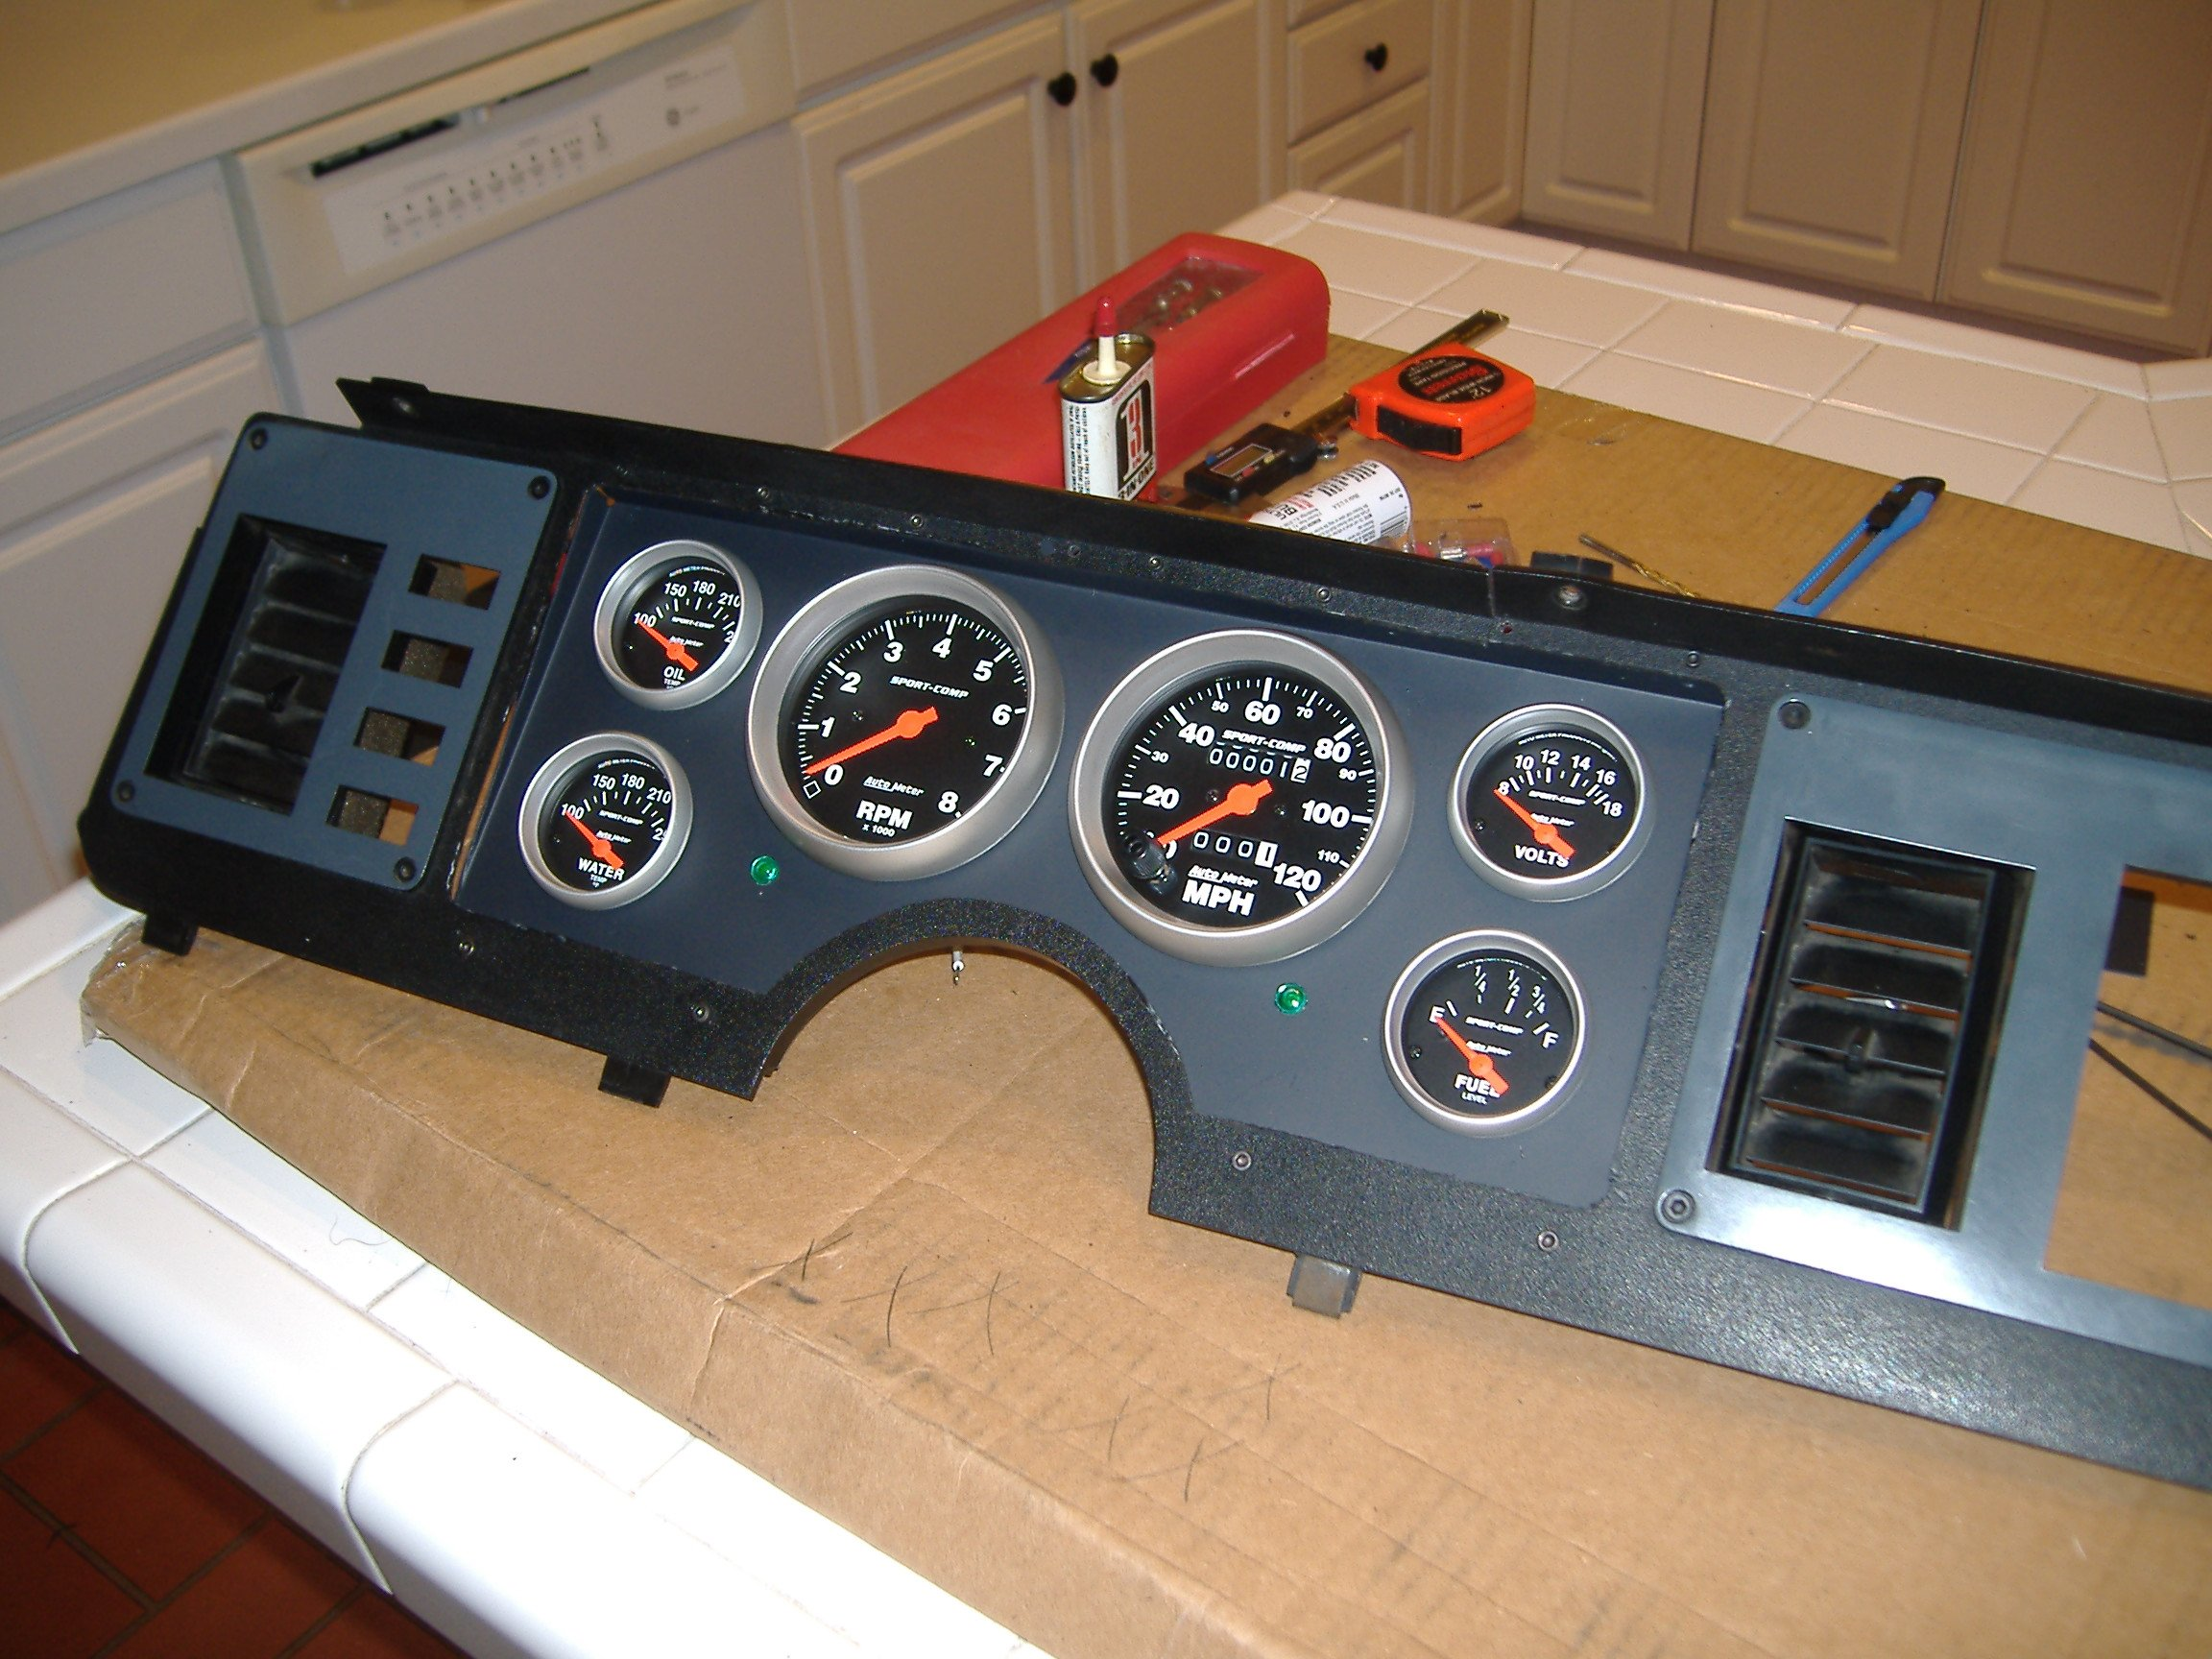 84103d1258937818 1986 mustang gt gauges panel assembled 1986 mustang gt gauges ford mustang forum 86 Mustang Wiring Diagram at panicattacktreatment.co